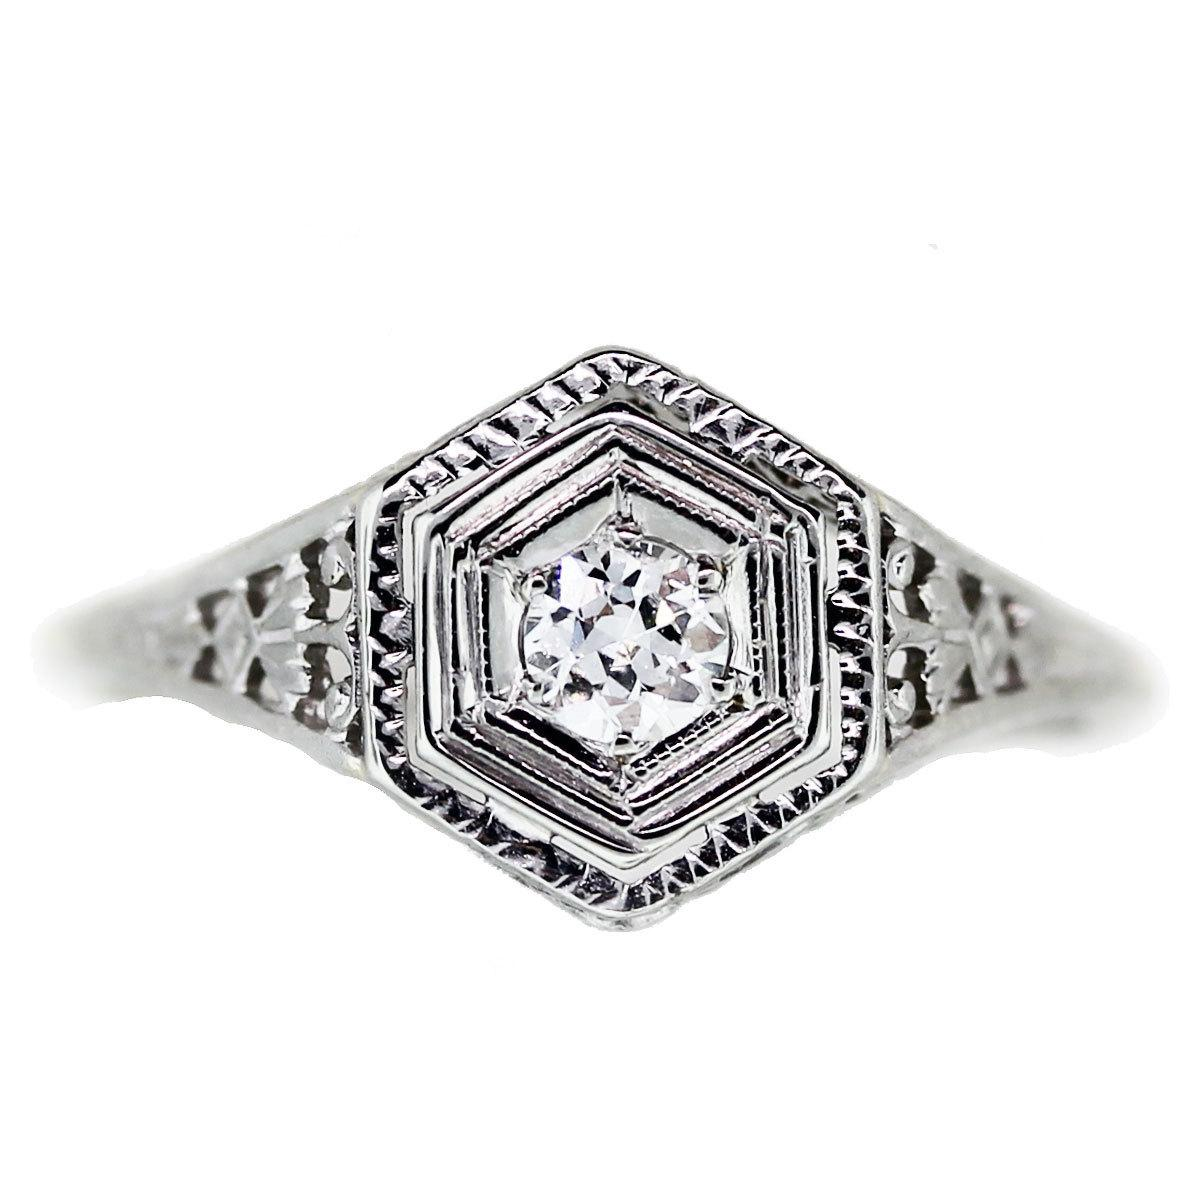 Engagement Ring Eye Candy: Engagement Rings Under 1000 Dollars